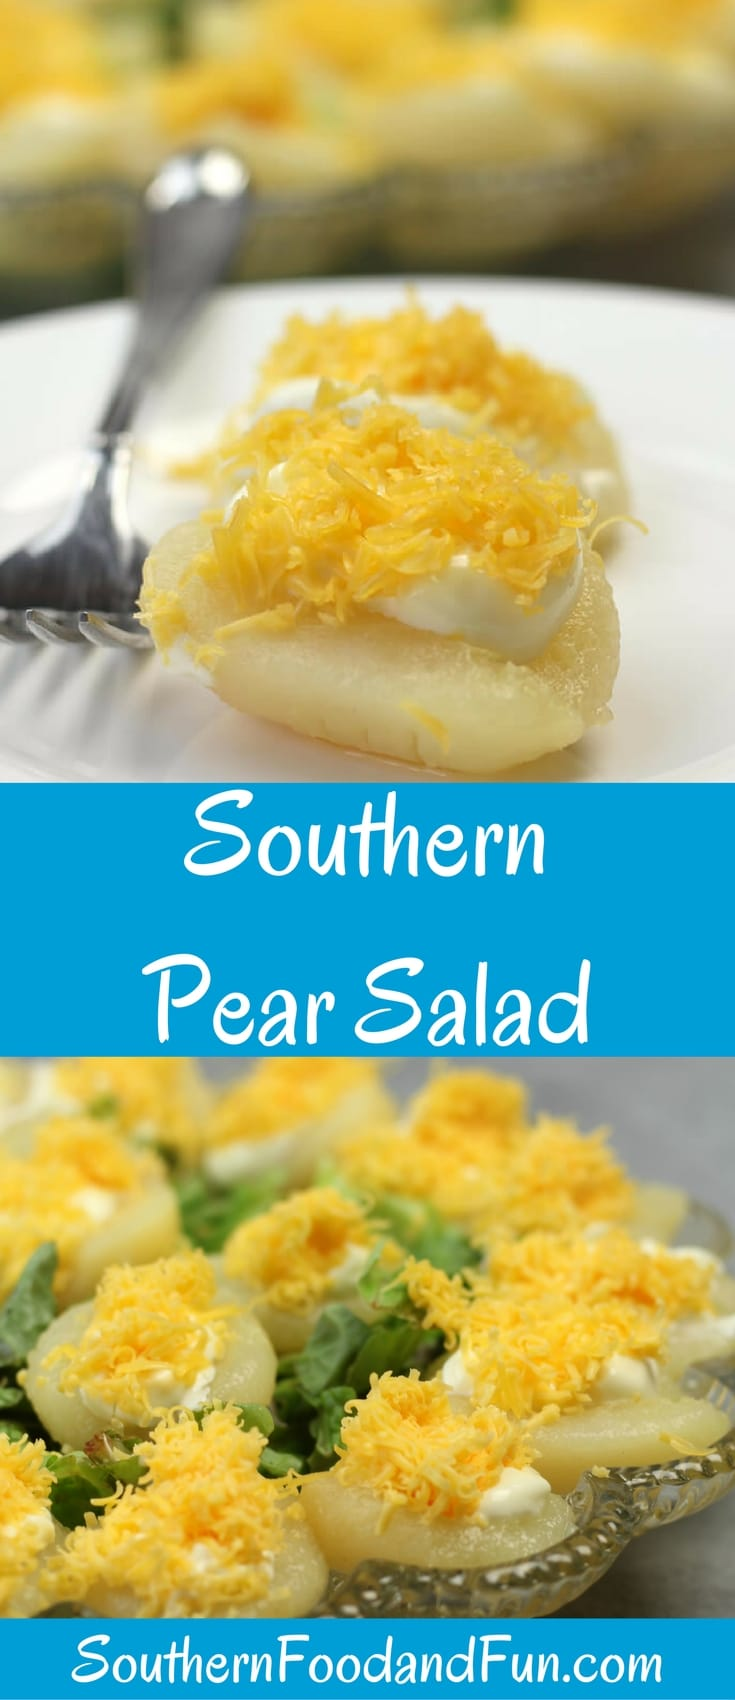 Pear Salad made with grated cheese and mayonnaise is an old-fashioned Southern favorite. Serve it as an appetizer or side dish to go with almost any meal.